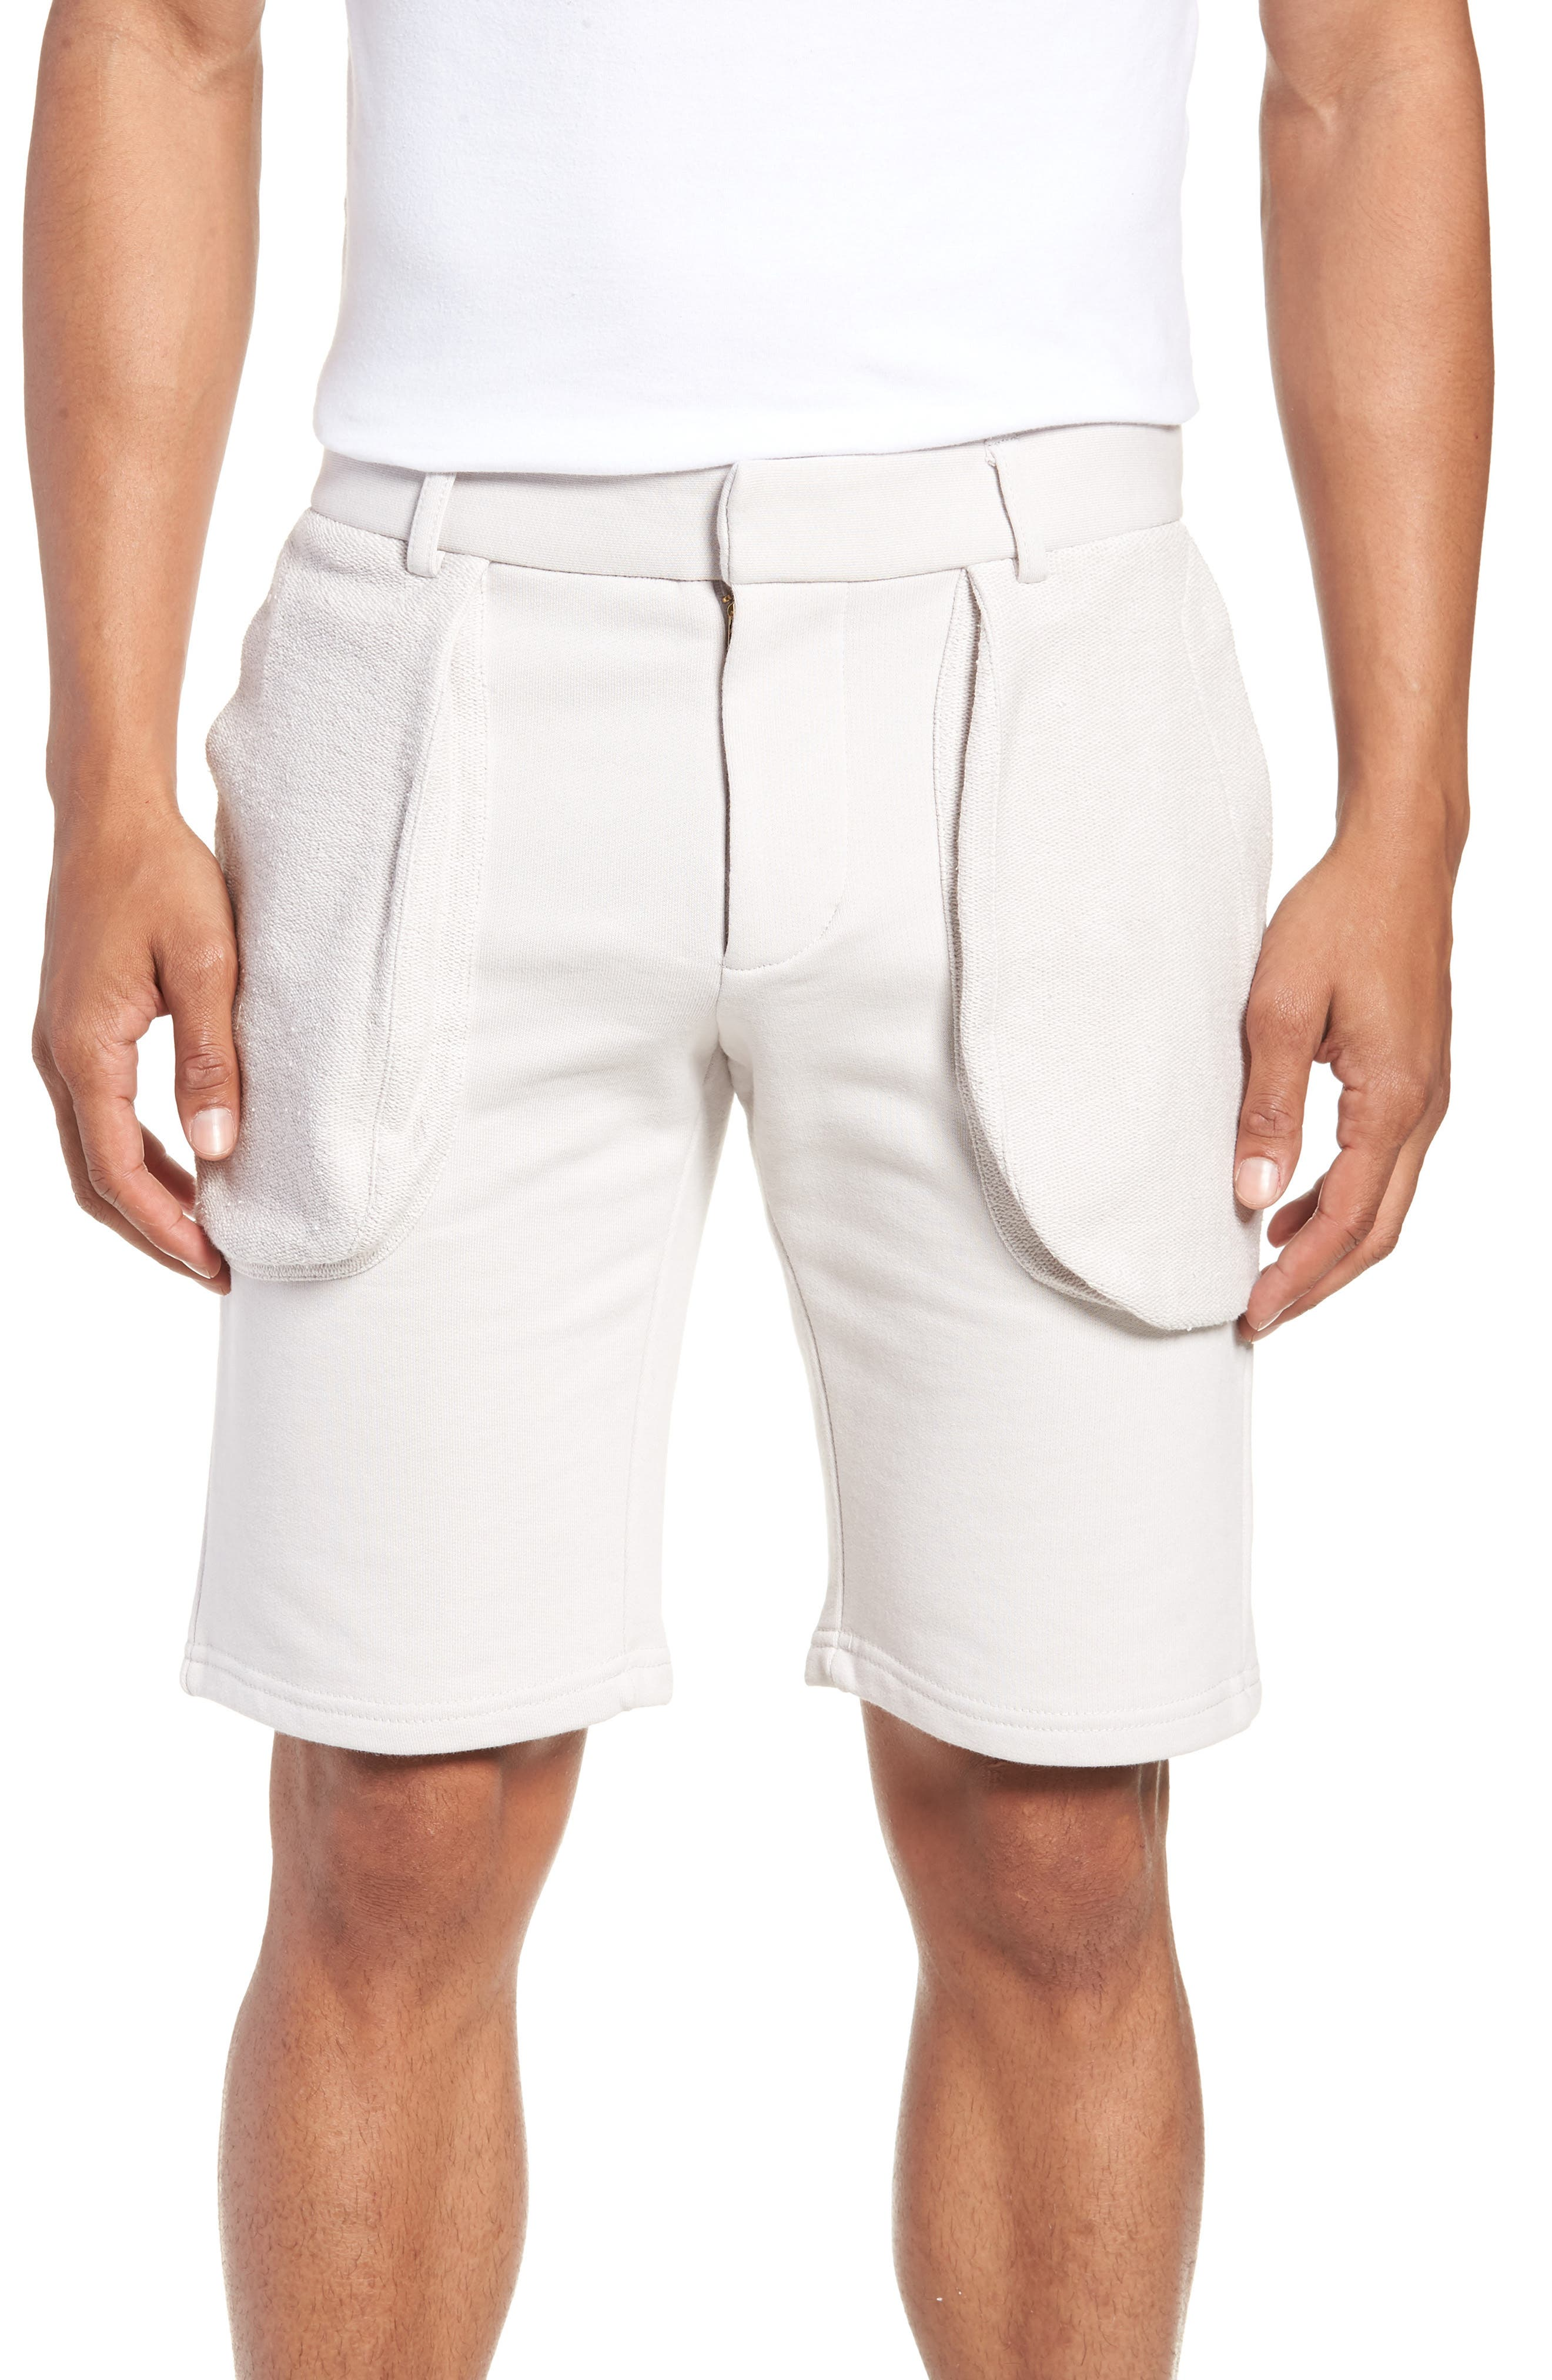 Lvlxiii Cargo Shorts, Purple